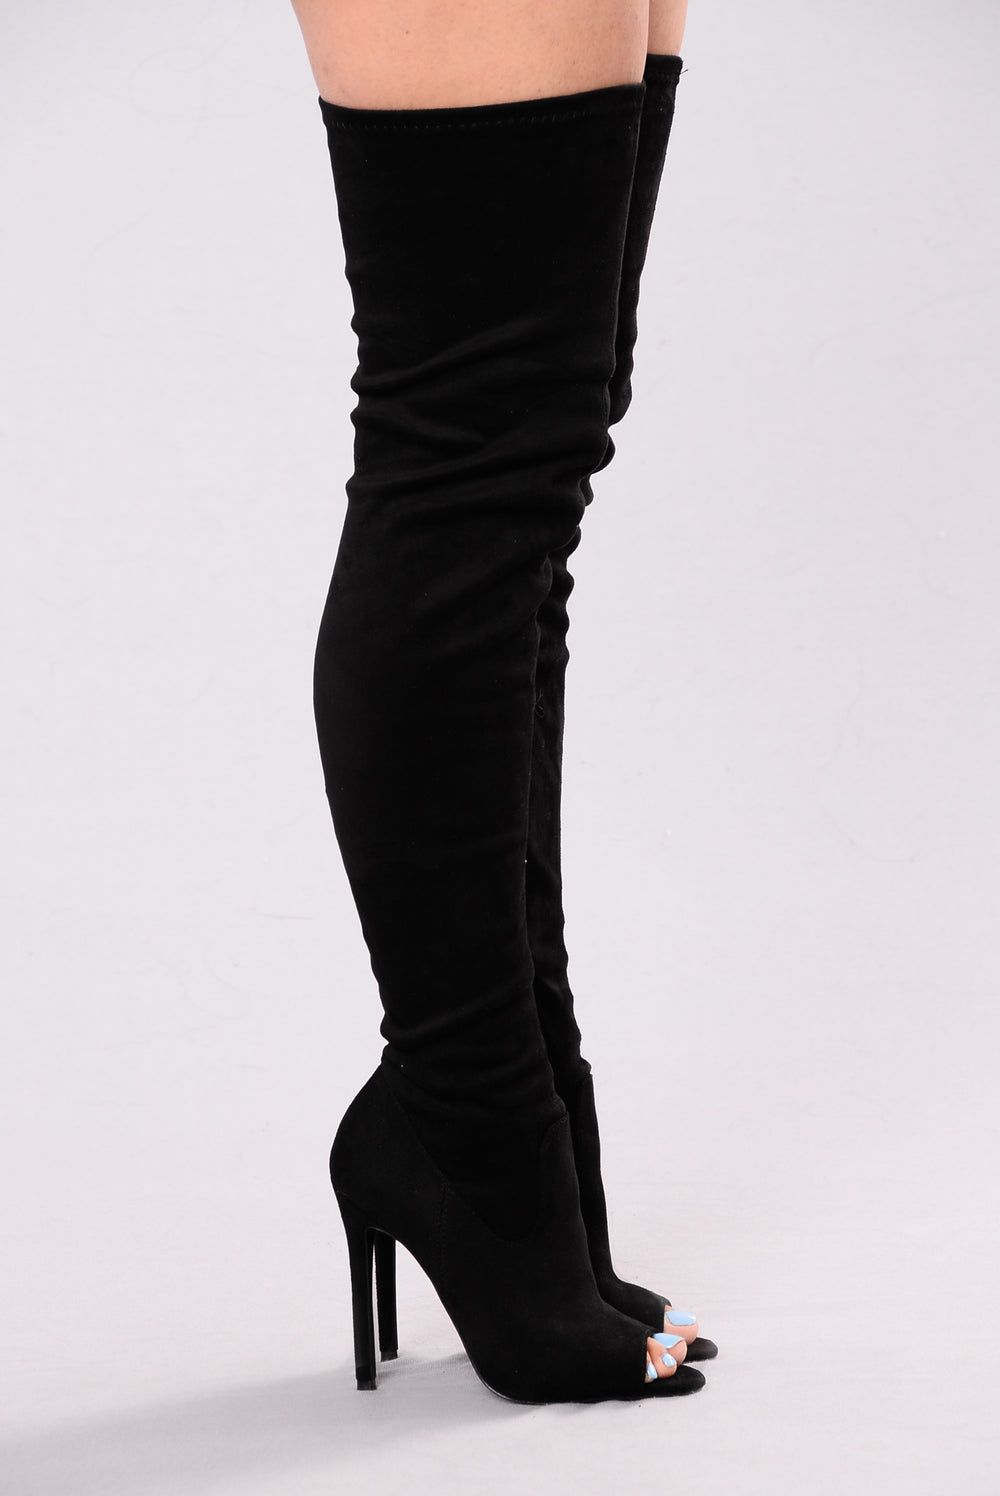 Looking For Fun Over The Knee Boot - Black